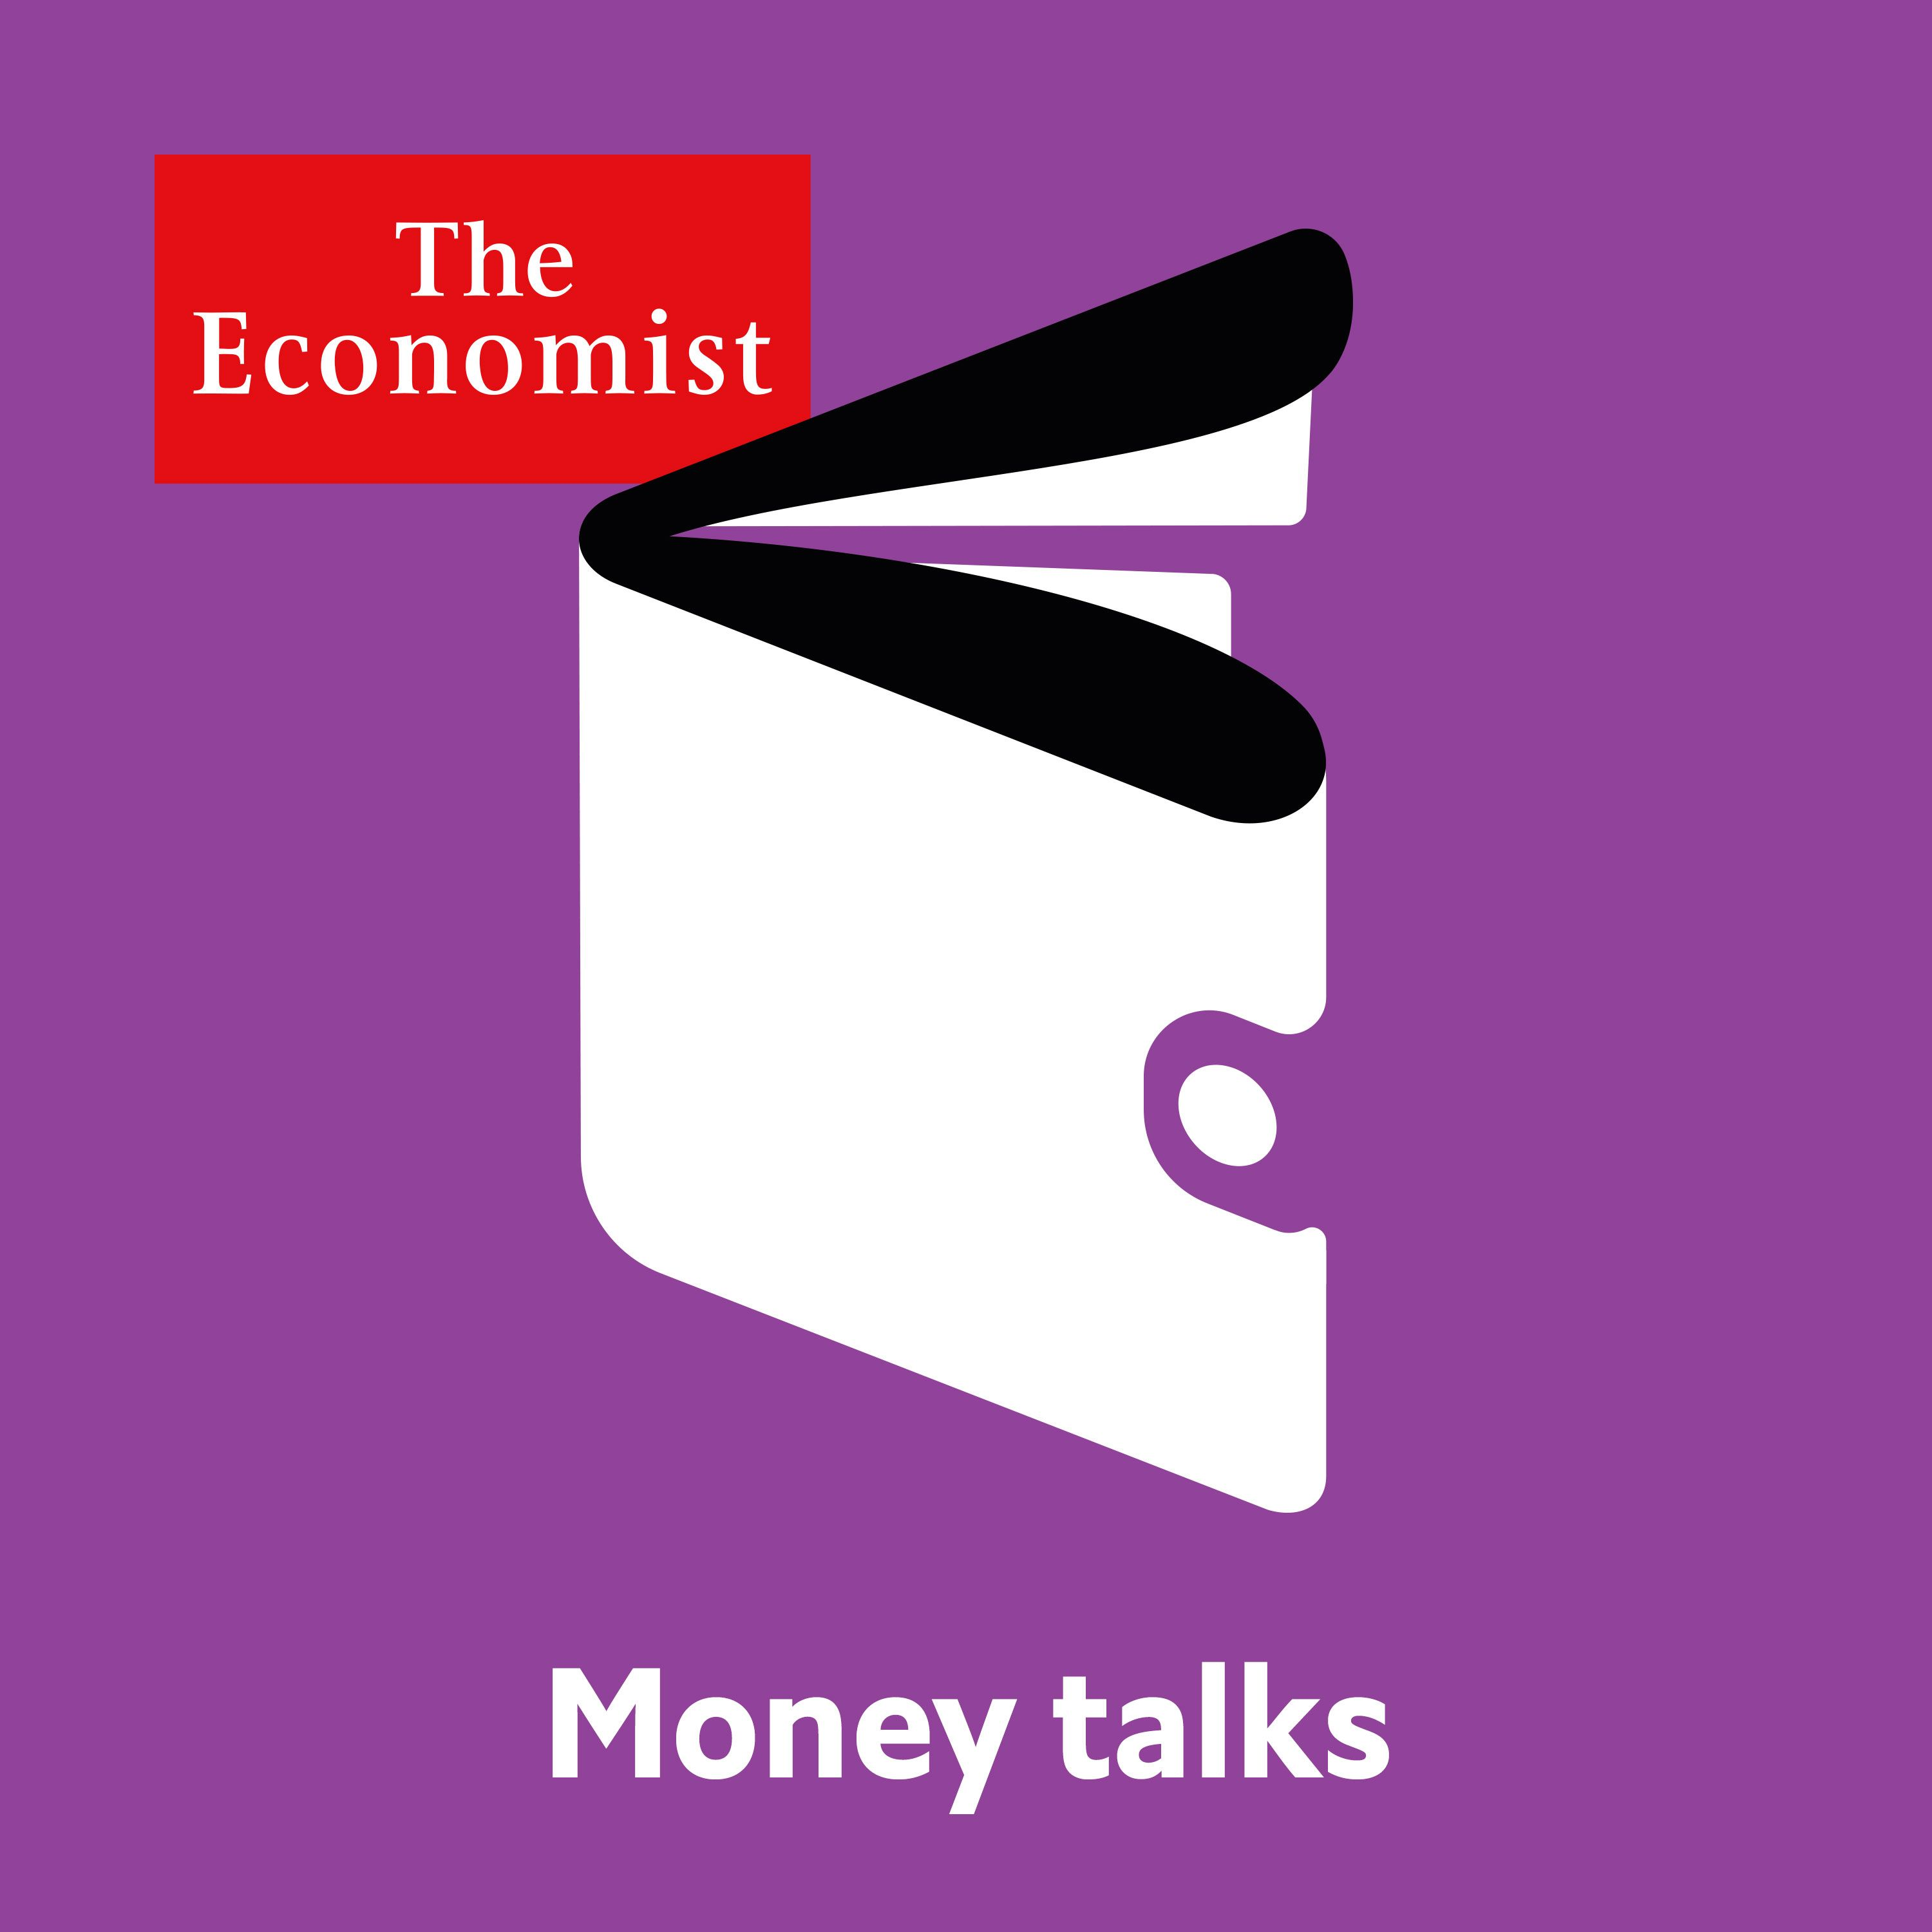 The Economist: Money talks